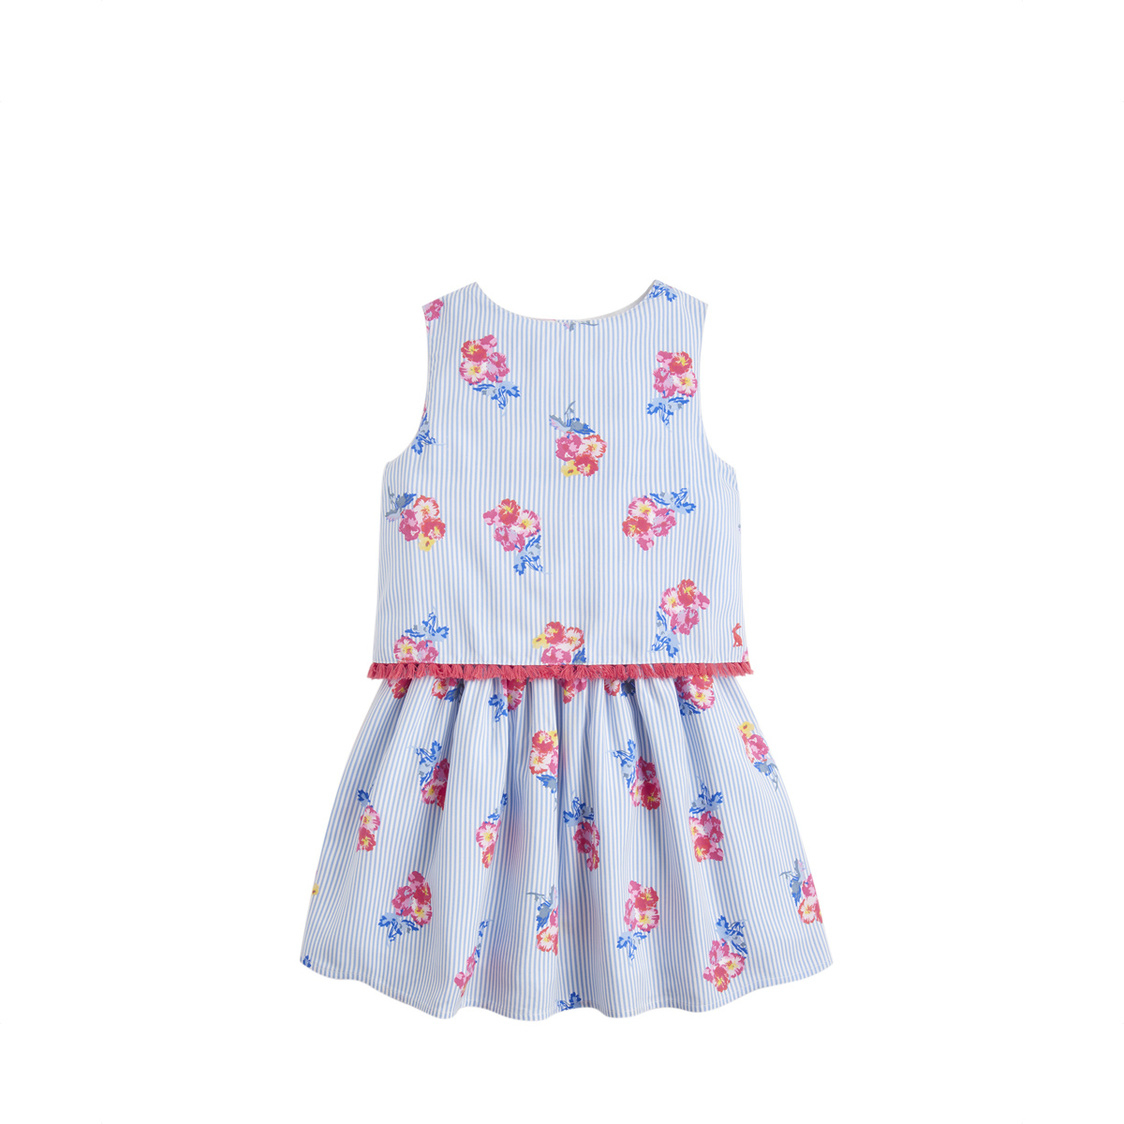 Imogen Woven Printed Dress 1-6 Years Blue Floral Stripe